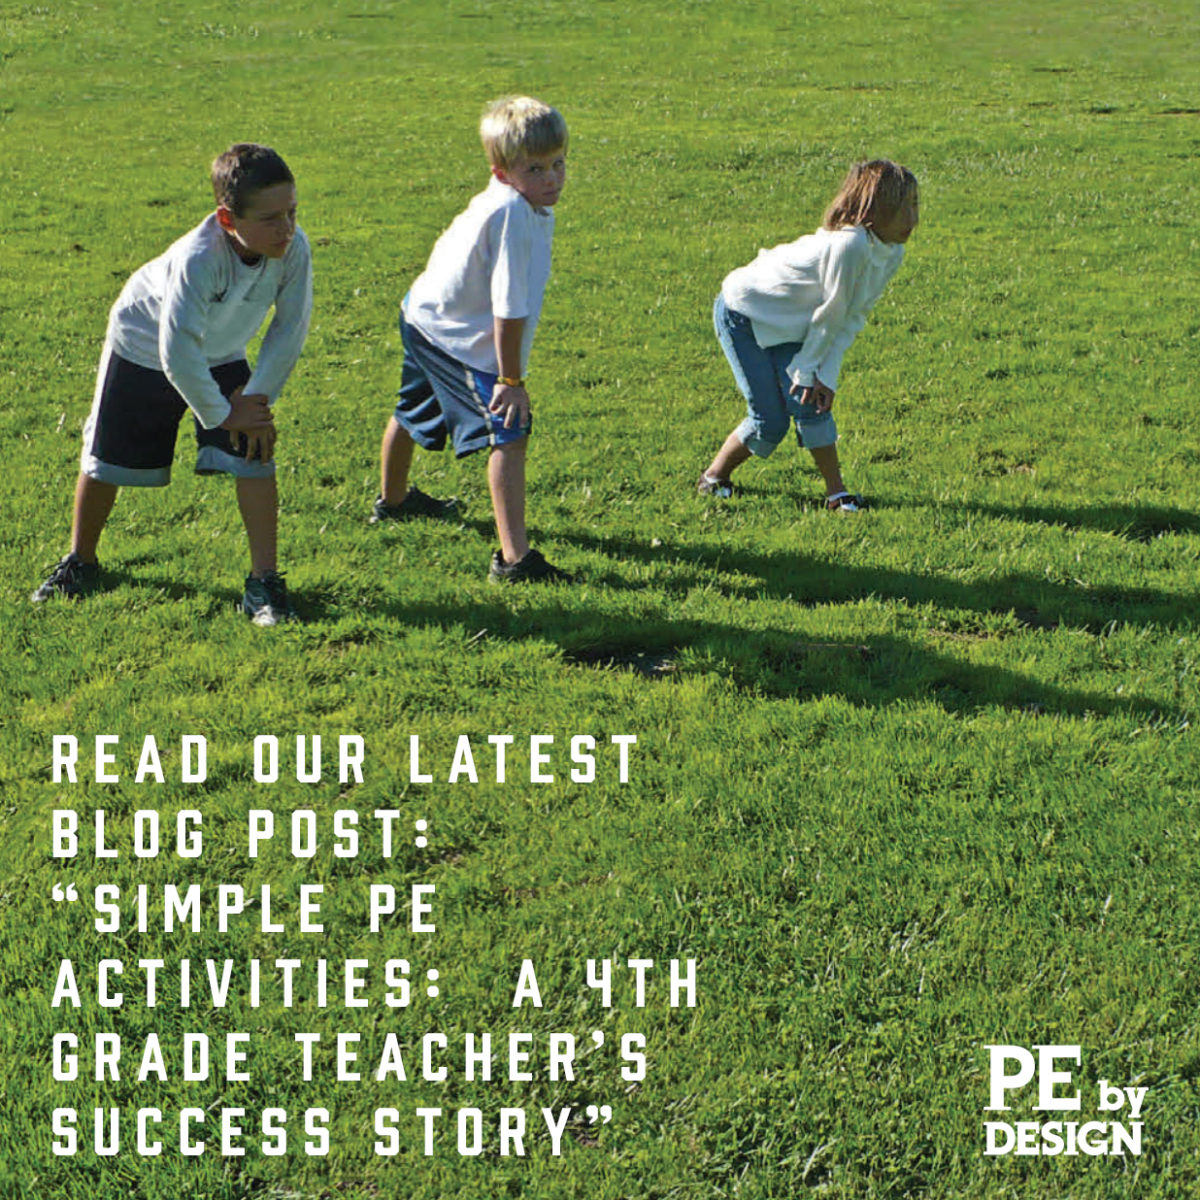 Simple PE Activities: A 4th Grade Teacher's Success Story